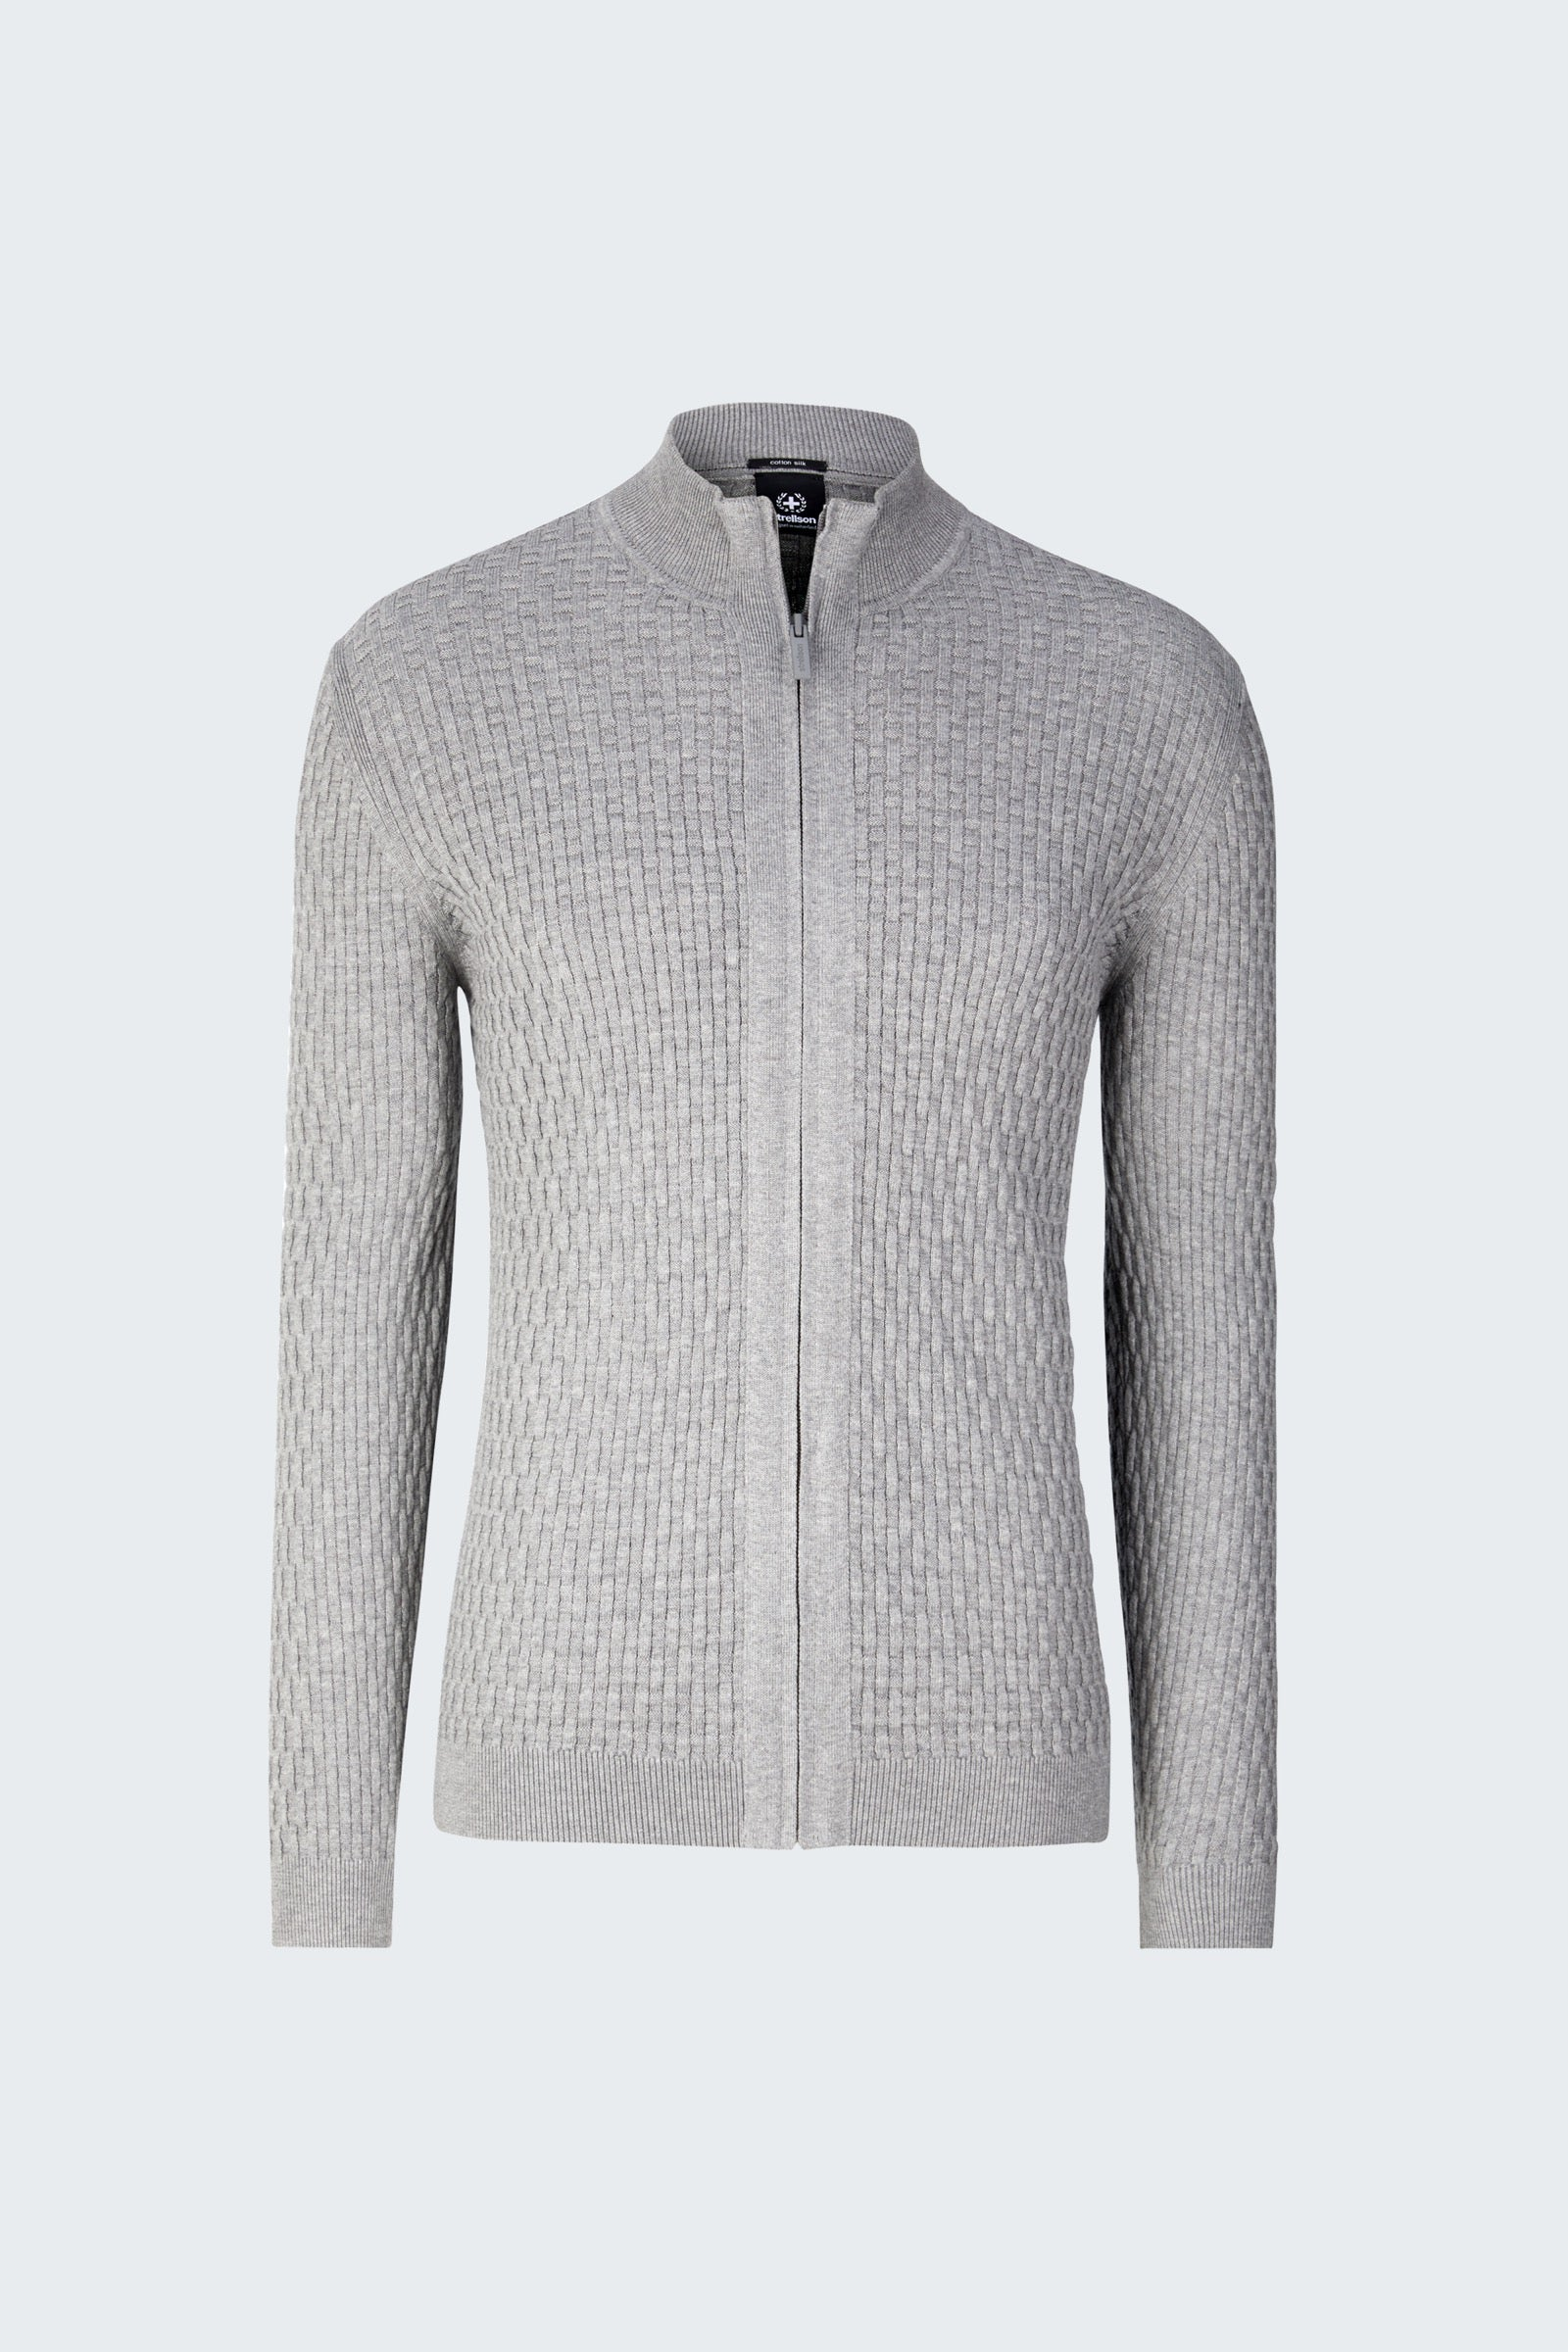 Strellson zip sweater light grey